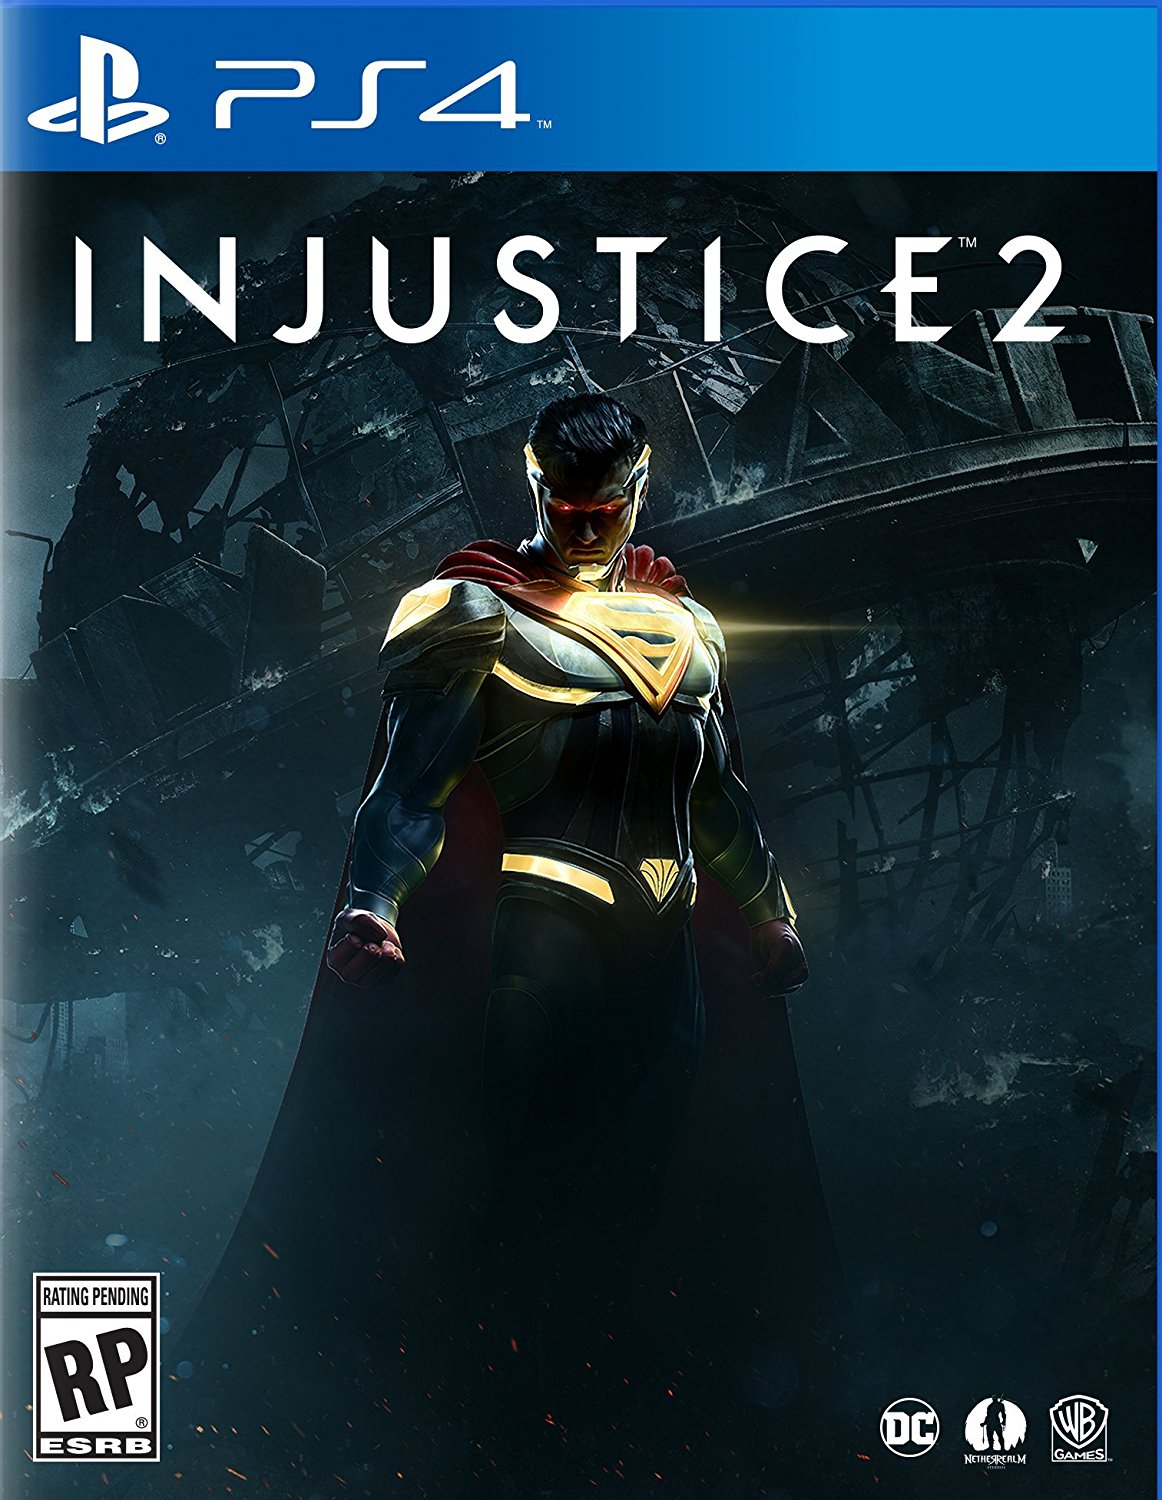 PS4 Injustice 2 (PlayStation 4) US